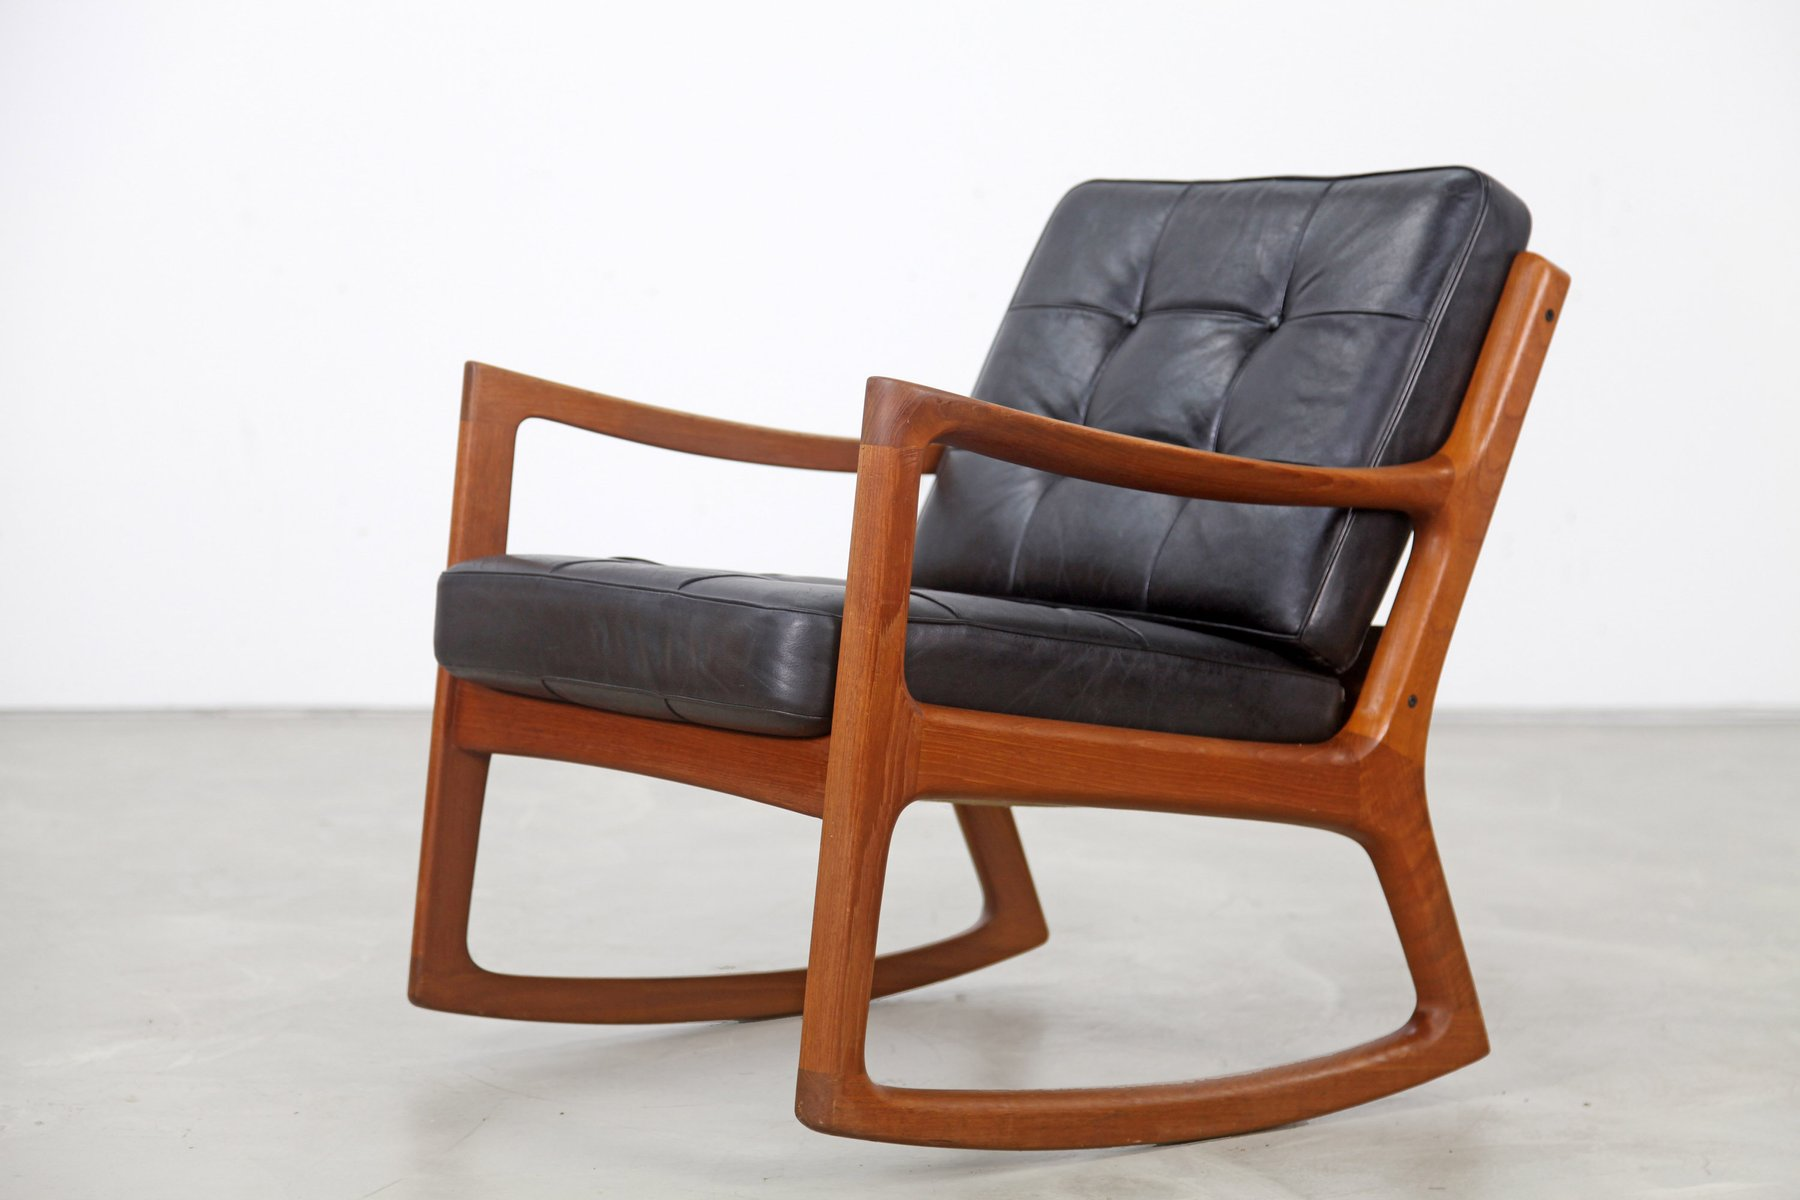 Vintage Teak Rocking Chair with Leather by Ole Wanscher for France